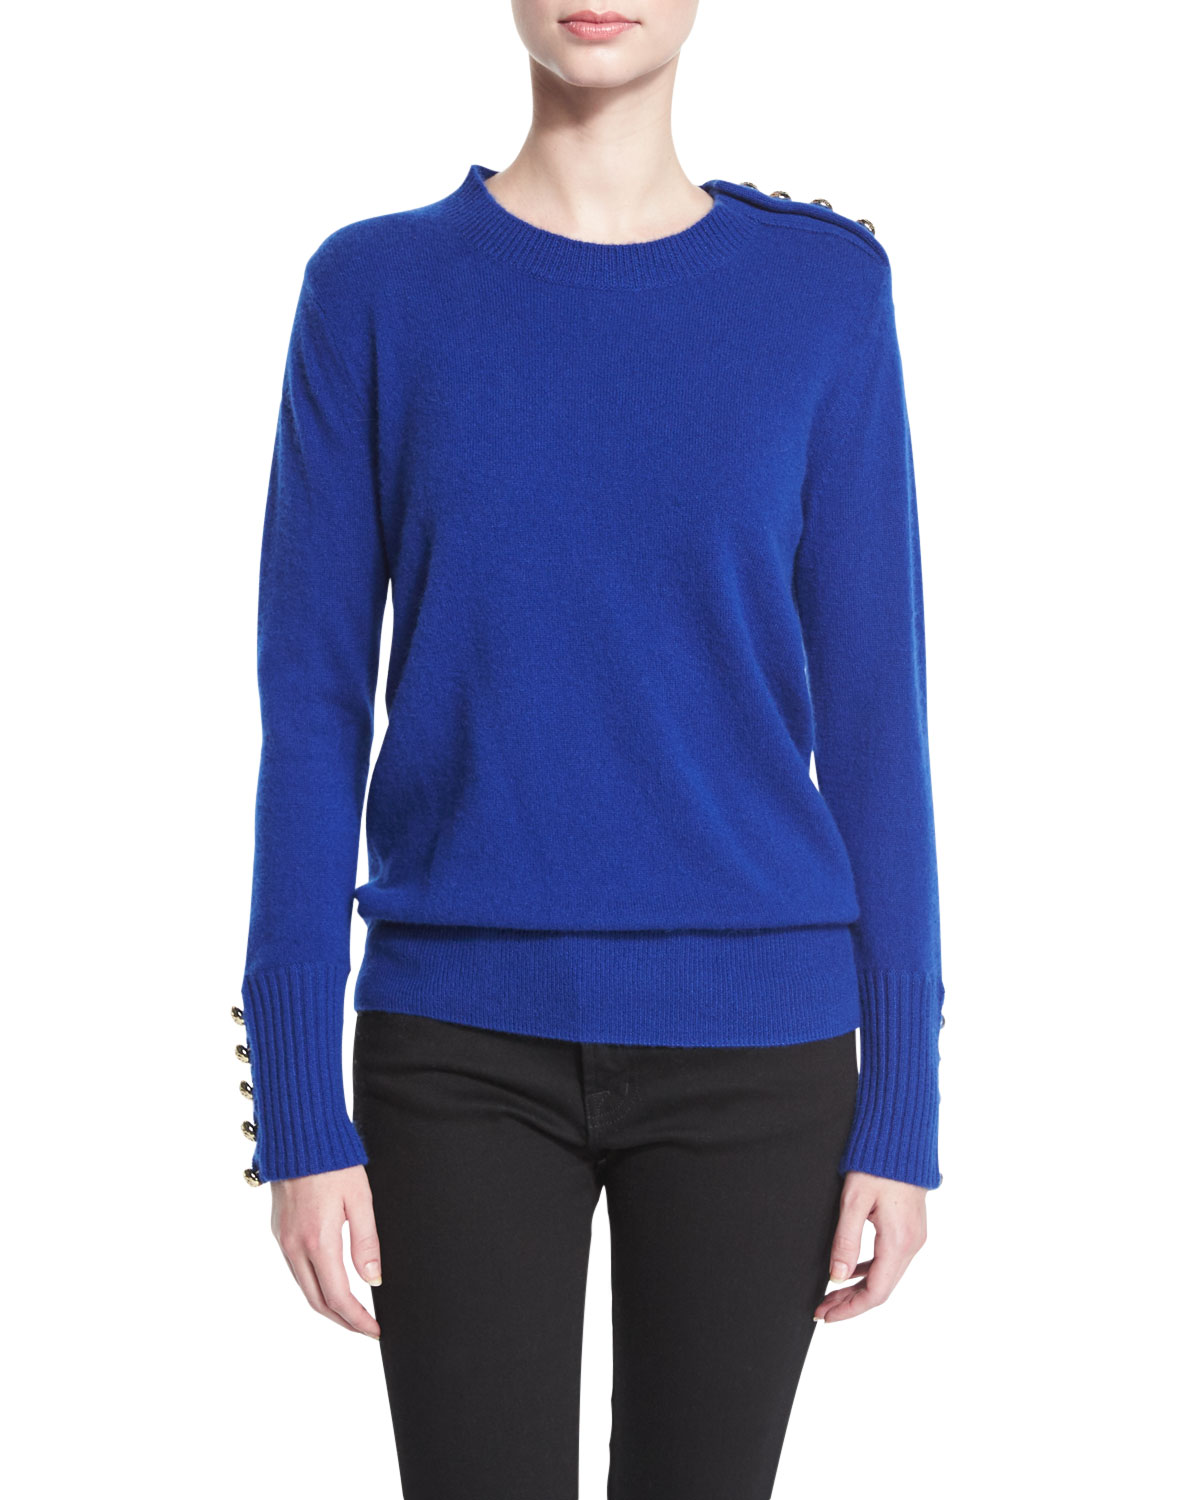 Button-Trim Crewneck Sweater, Bright Navy